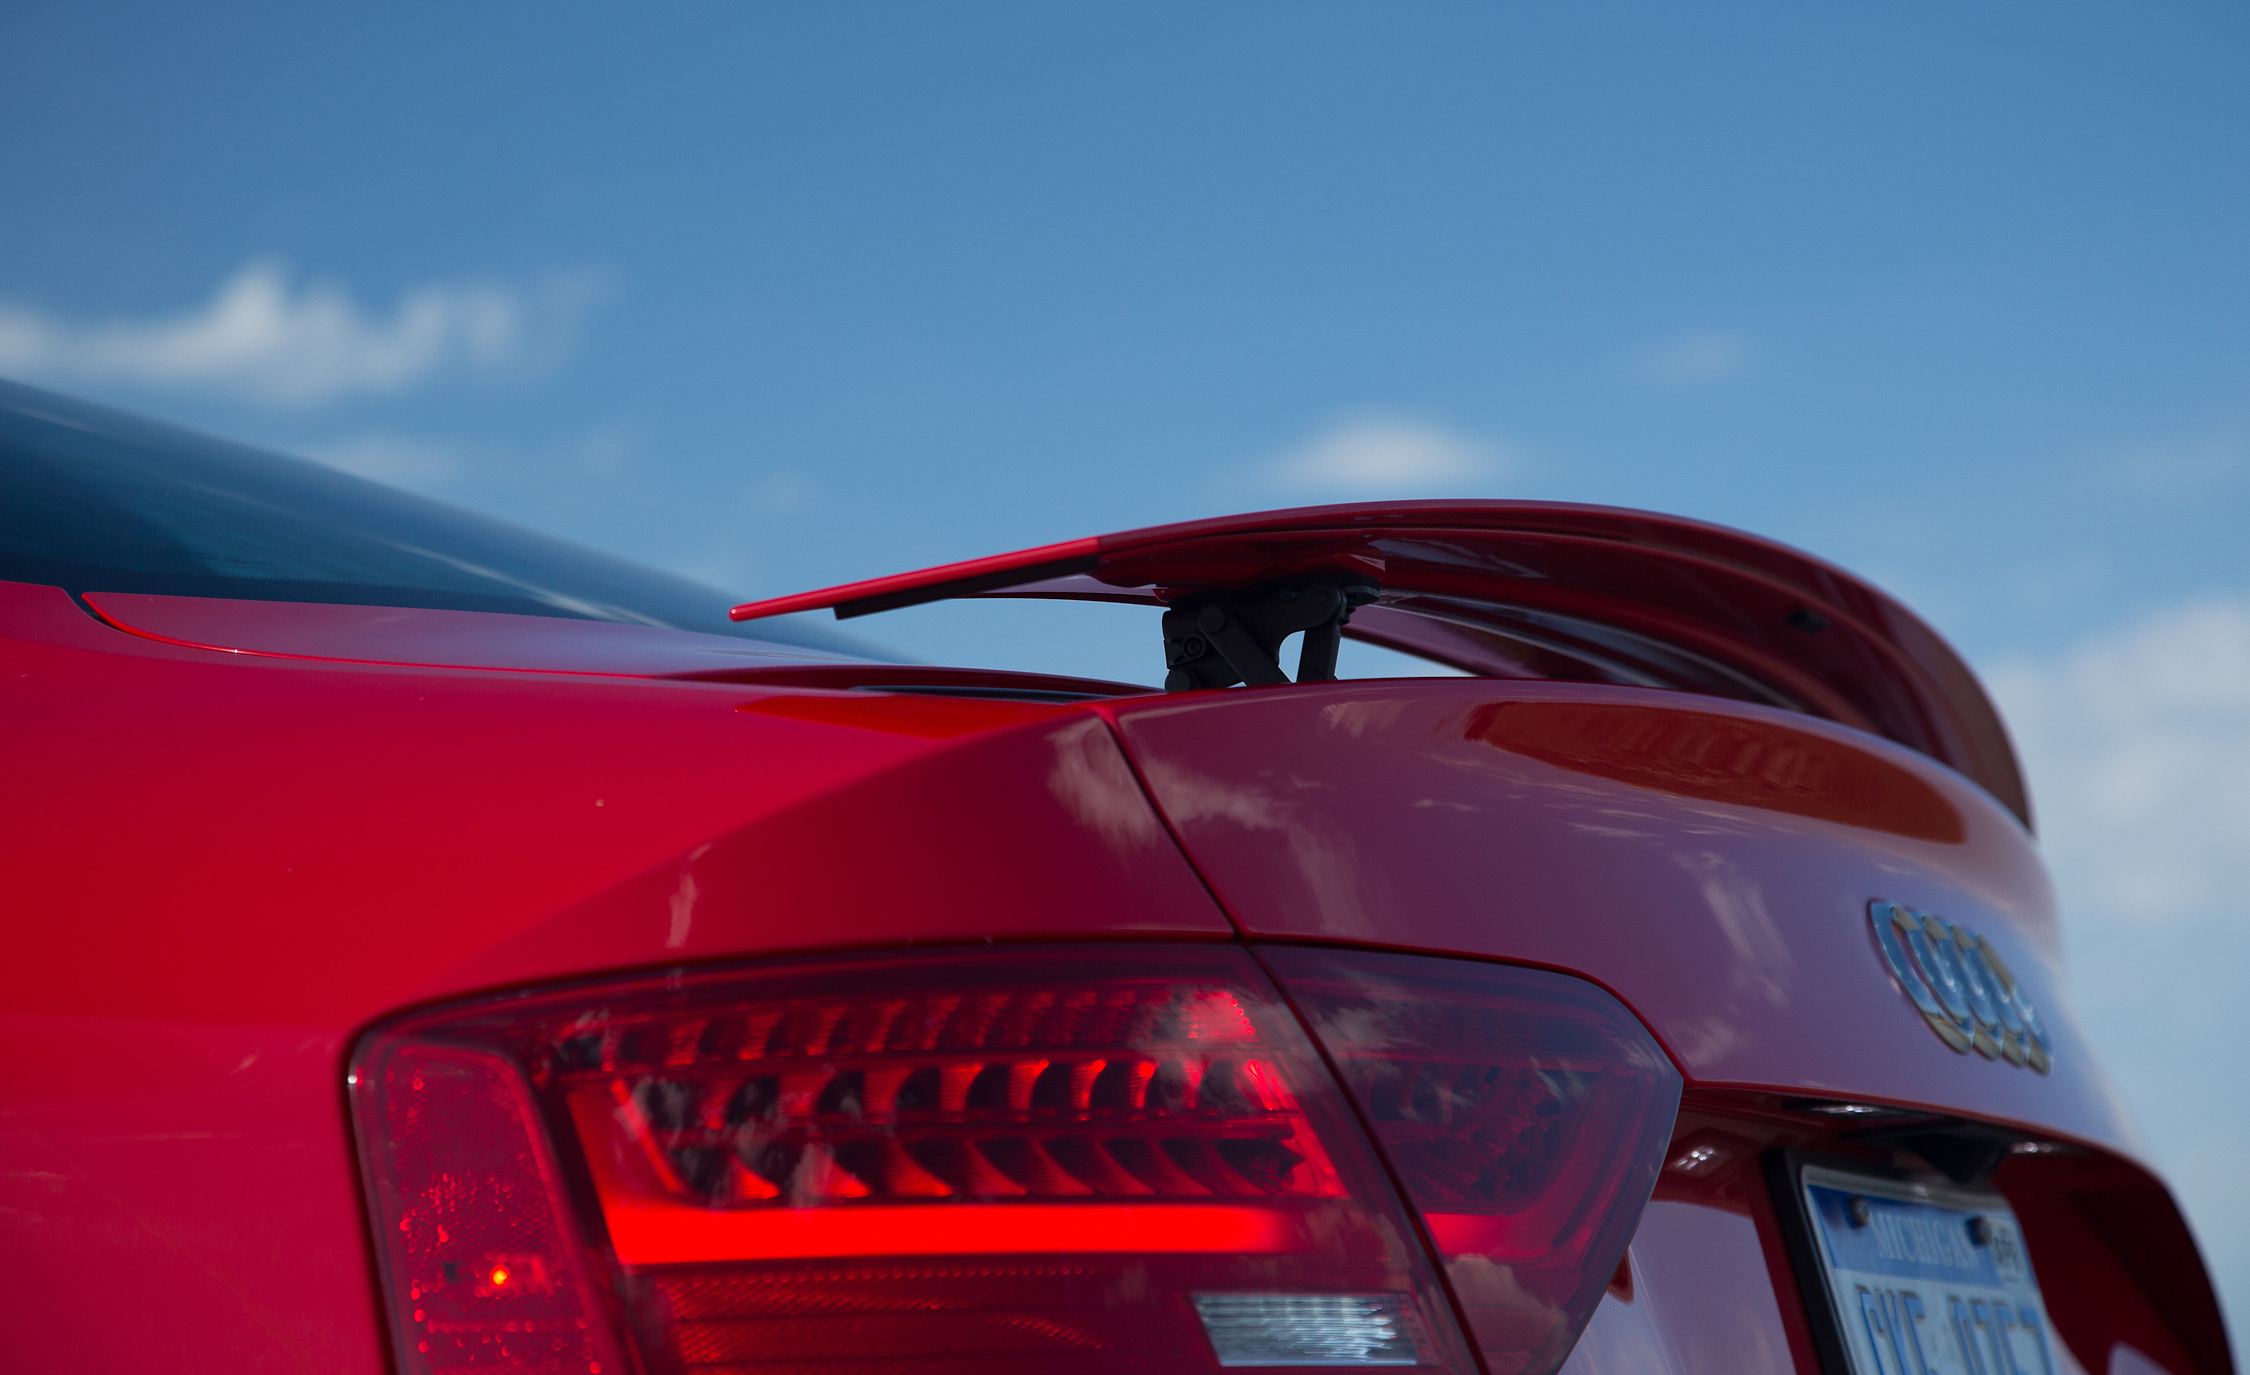 2013 Audi RS 5 Exterior View Rear Wing Spoiler (Photo 16 of 41)